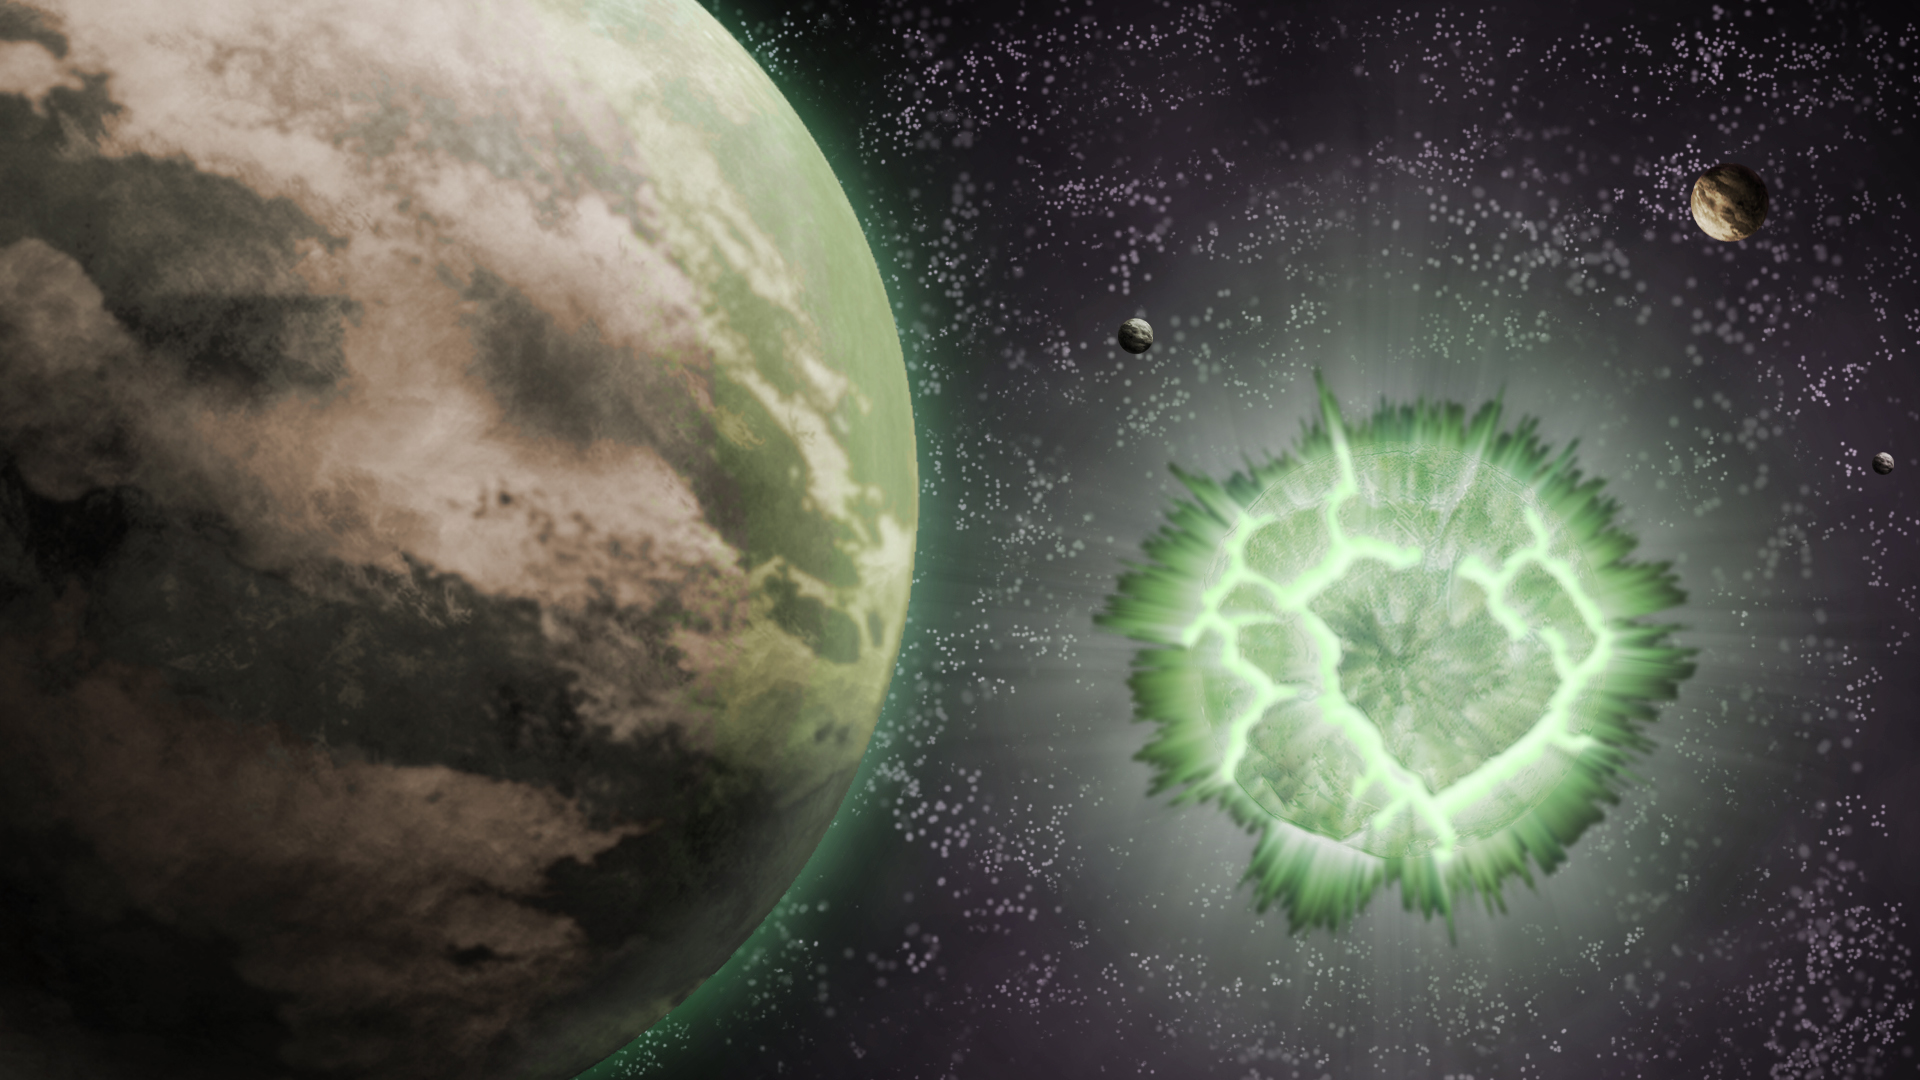 ... Krypton Explosion   Space Wallpaper By H Thomson